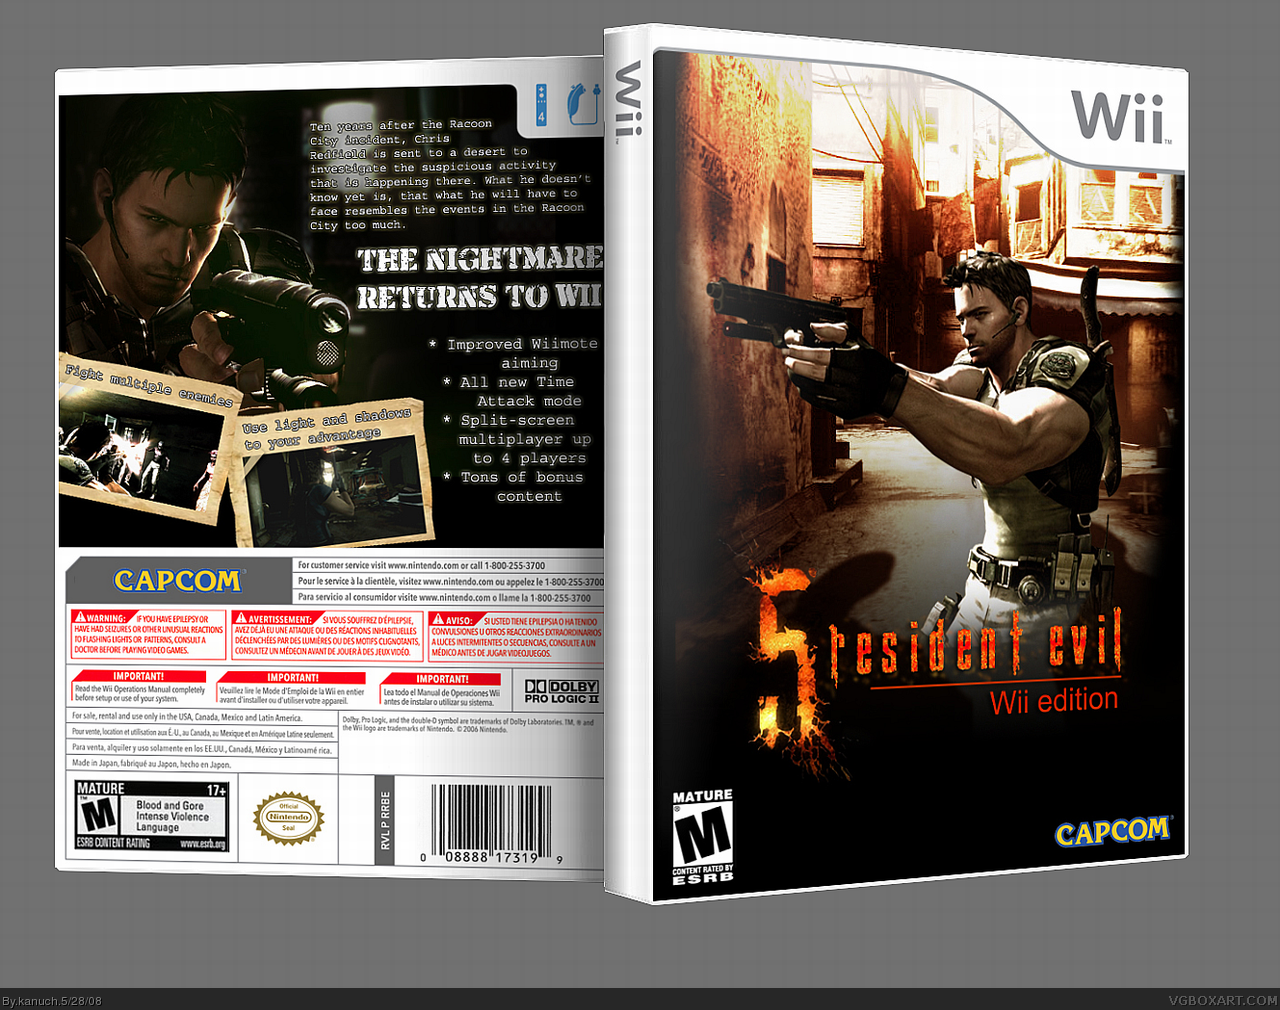 resident evil 4 wii edition download ita